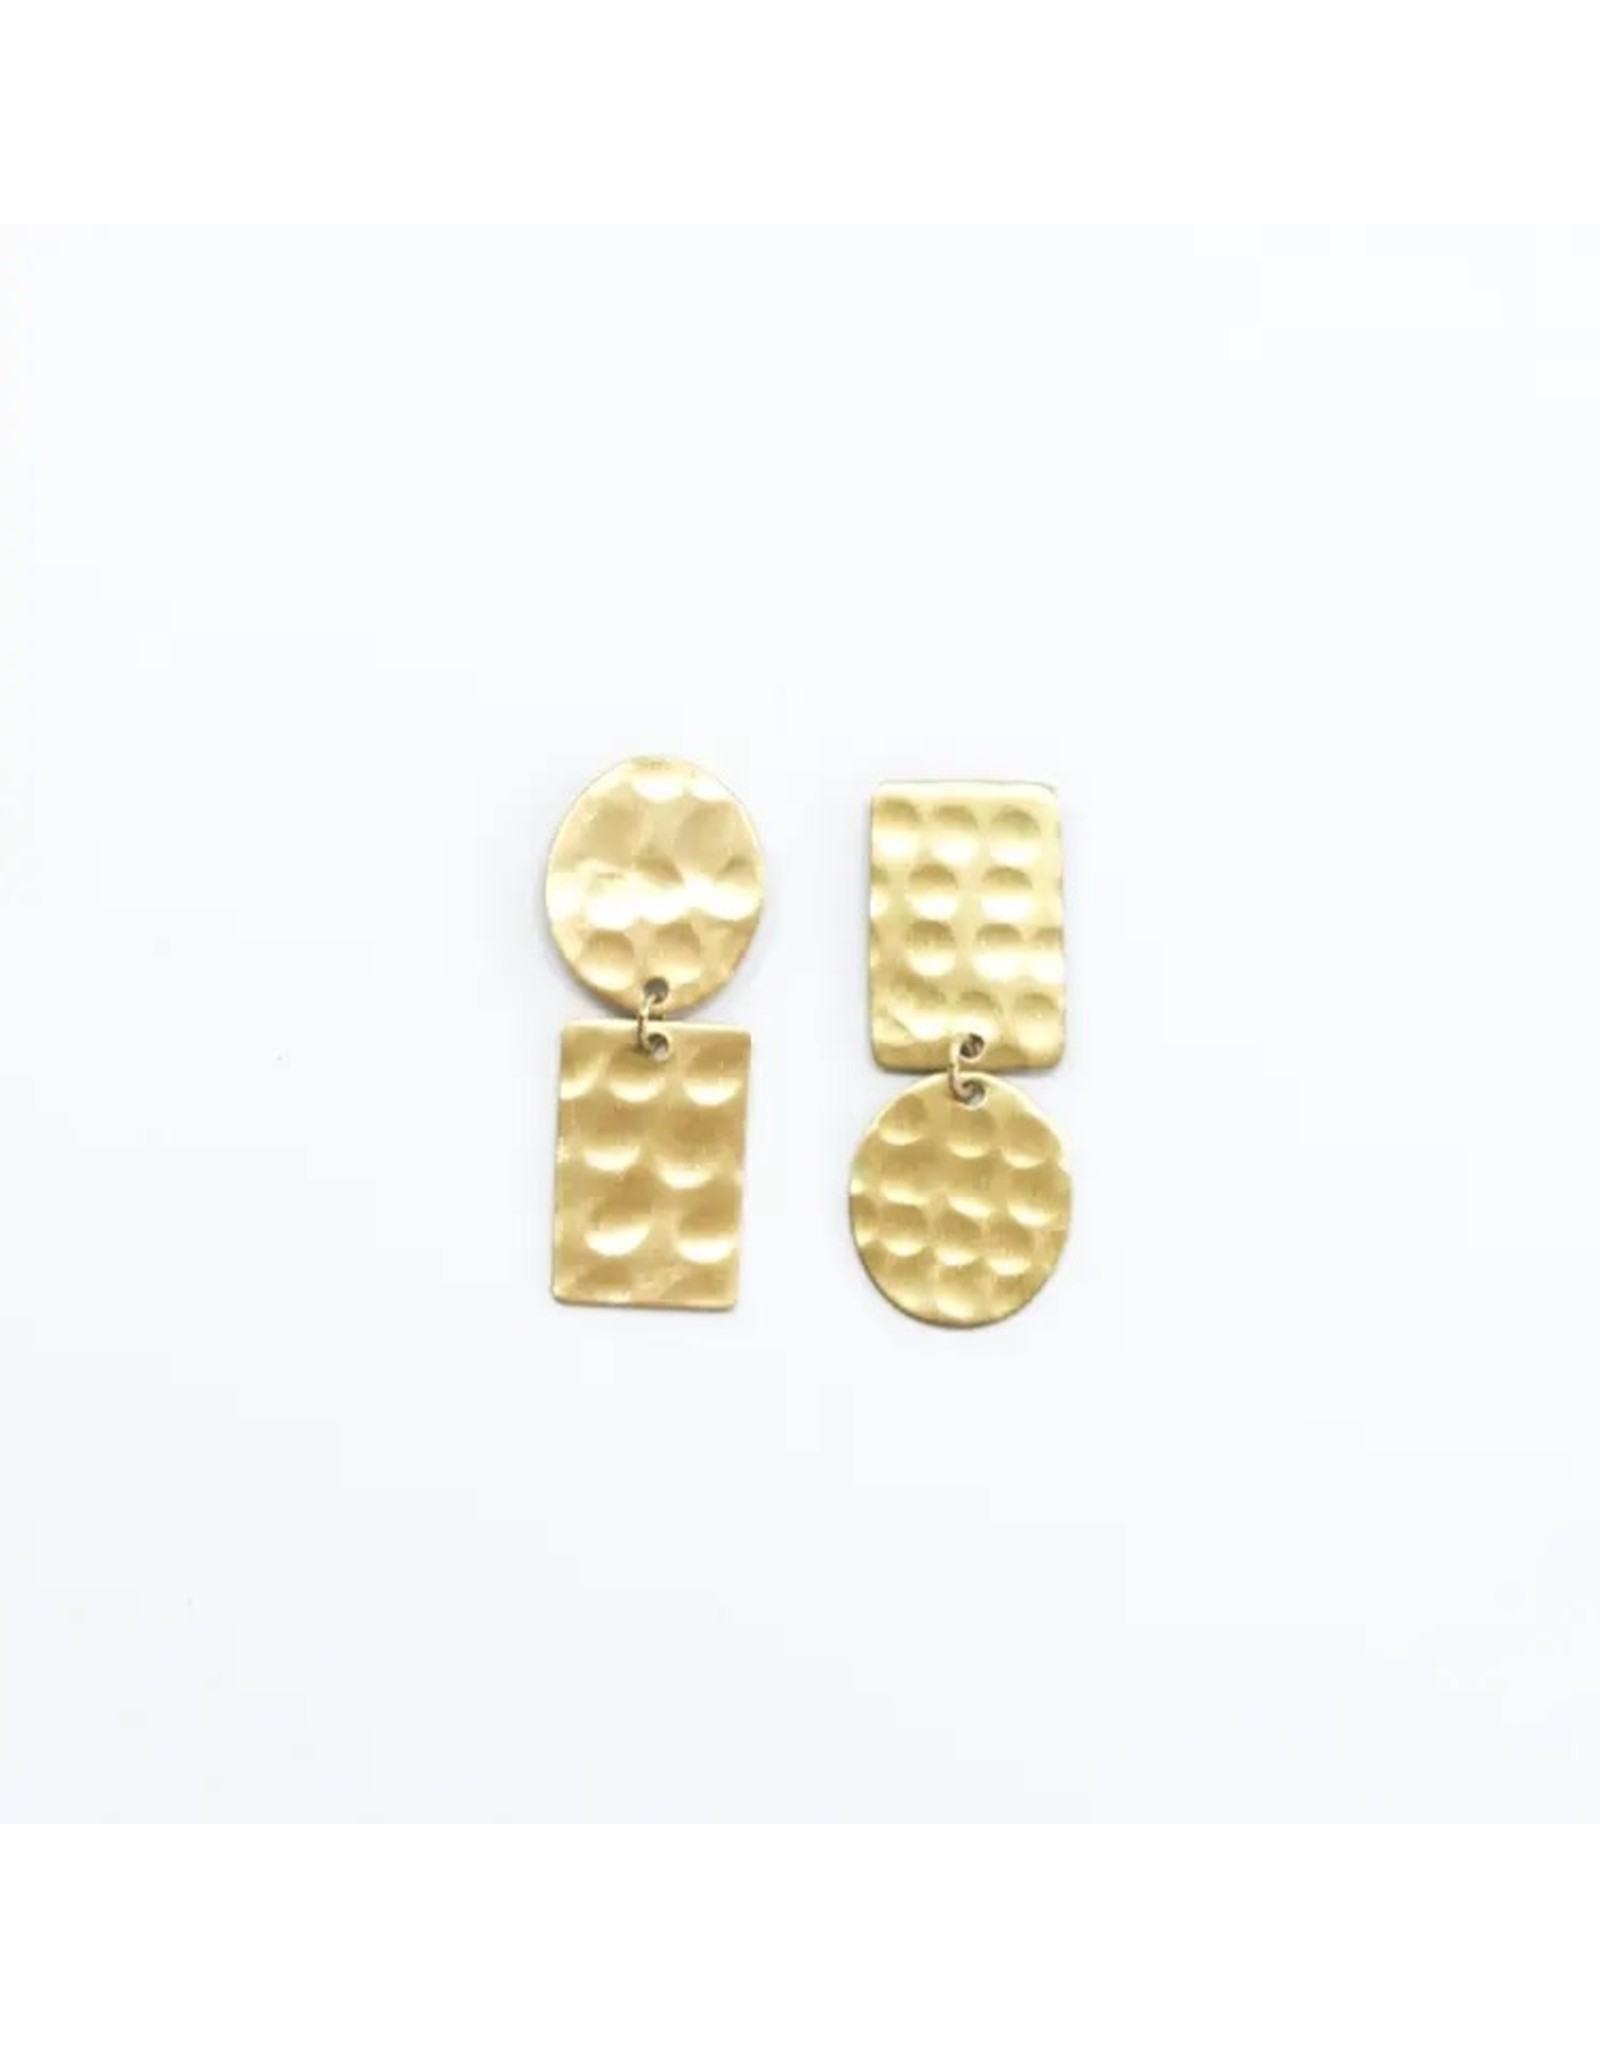 Rover & Kin Hammered Flipped Shapes Earrings